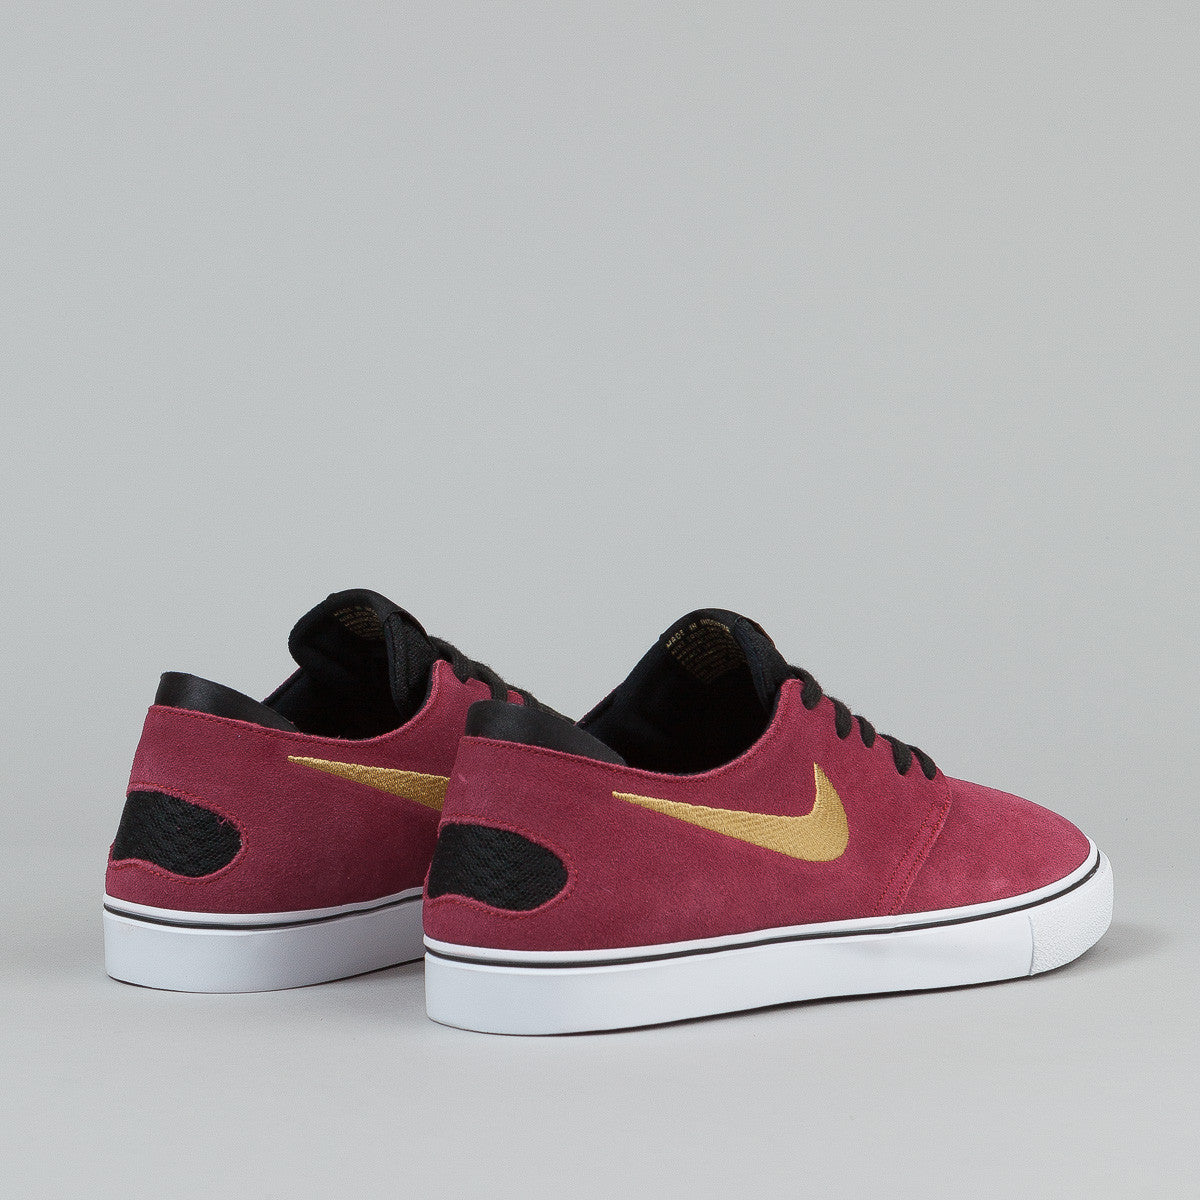 Nike SB Oneshot Shoes - Team Red / Metallic Gold / Black / White